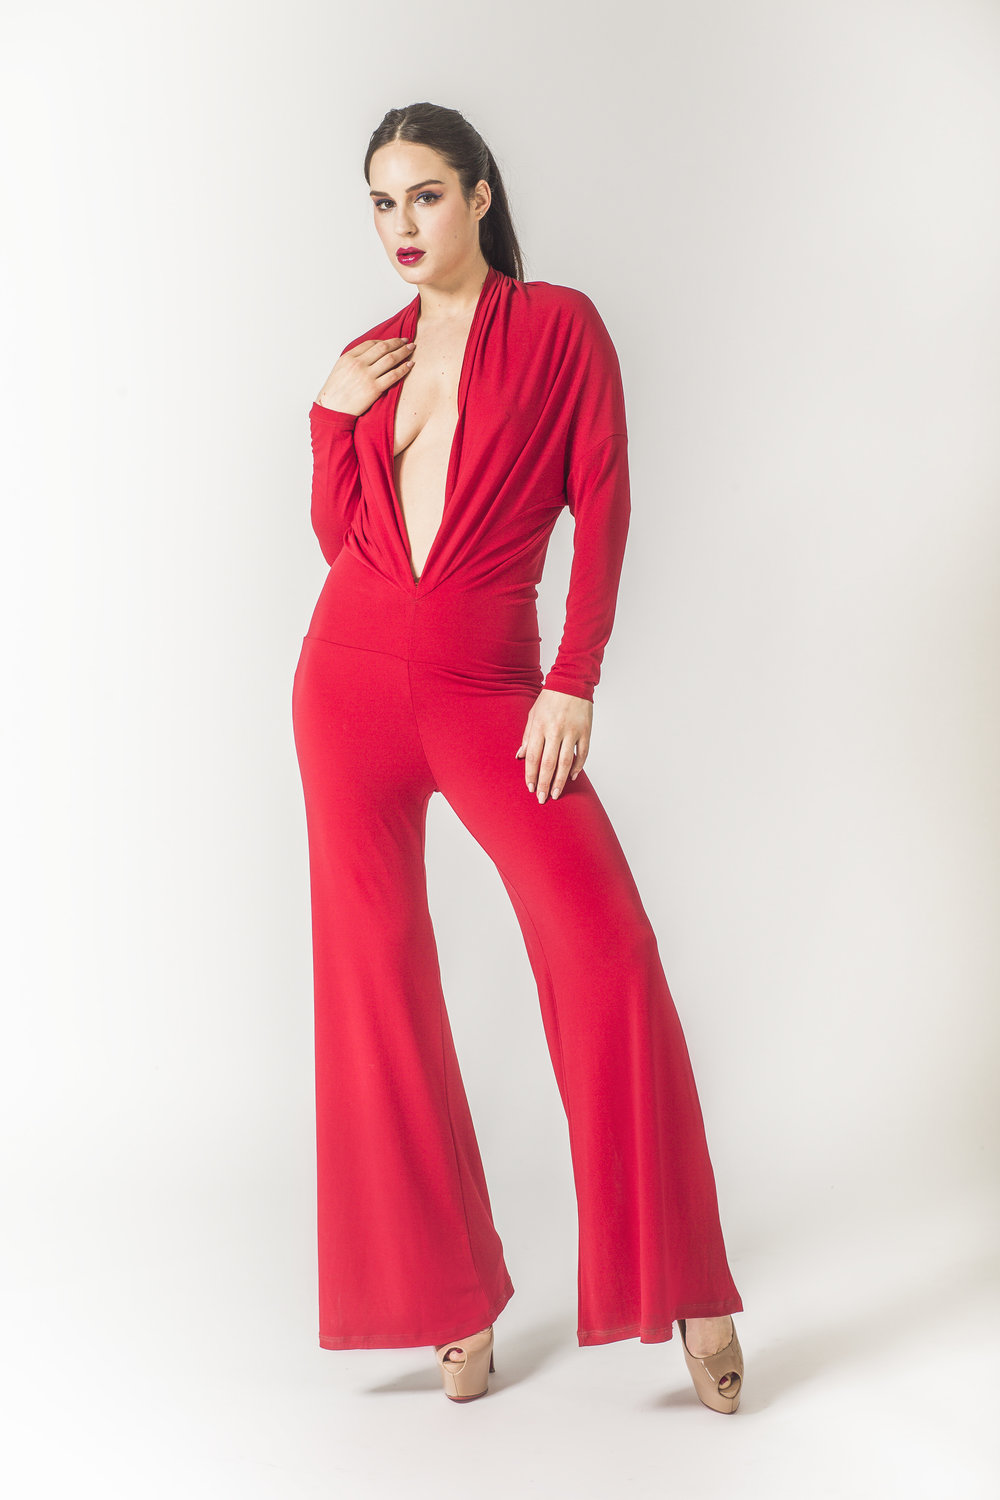 Sexy red jumpsuits